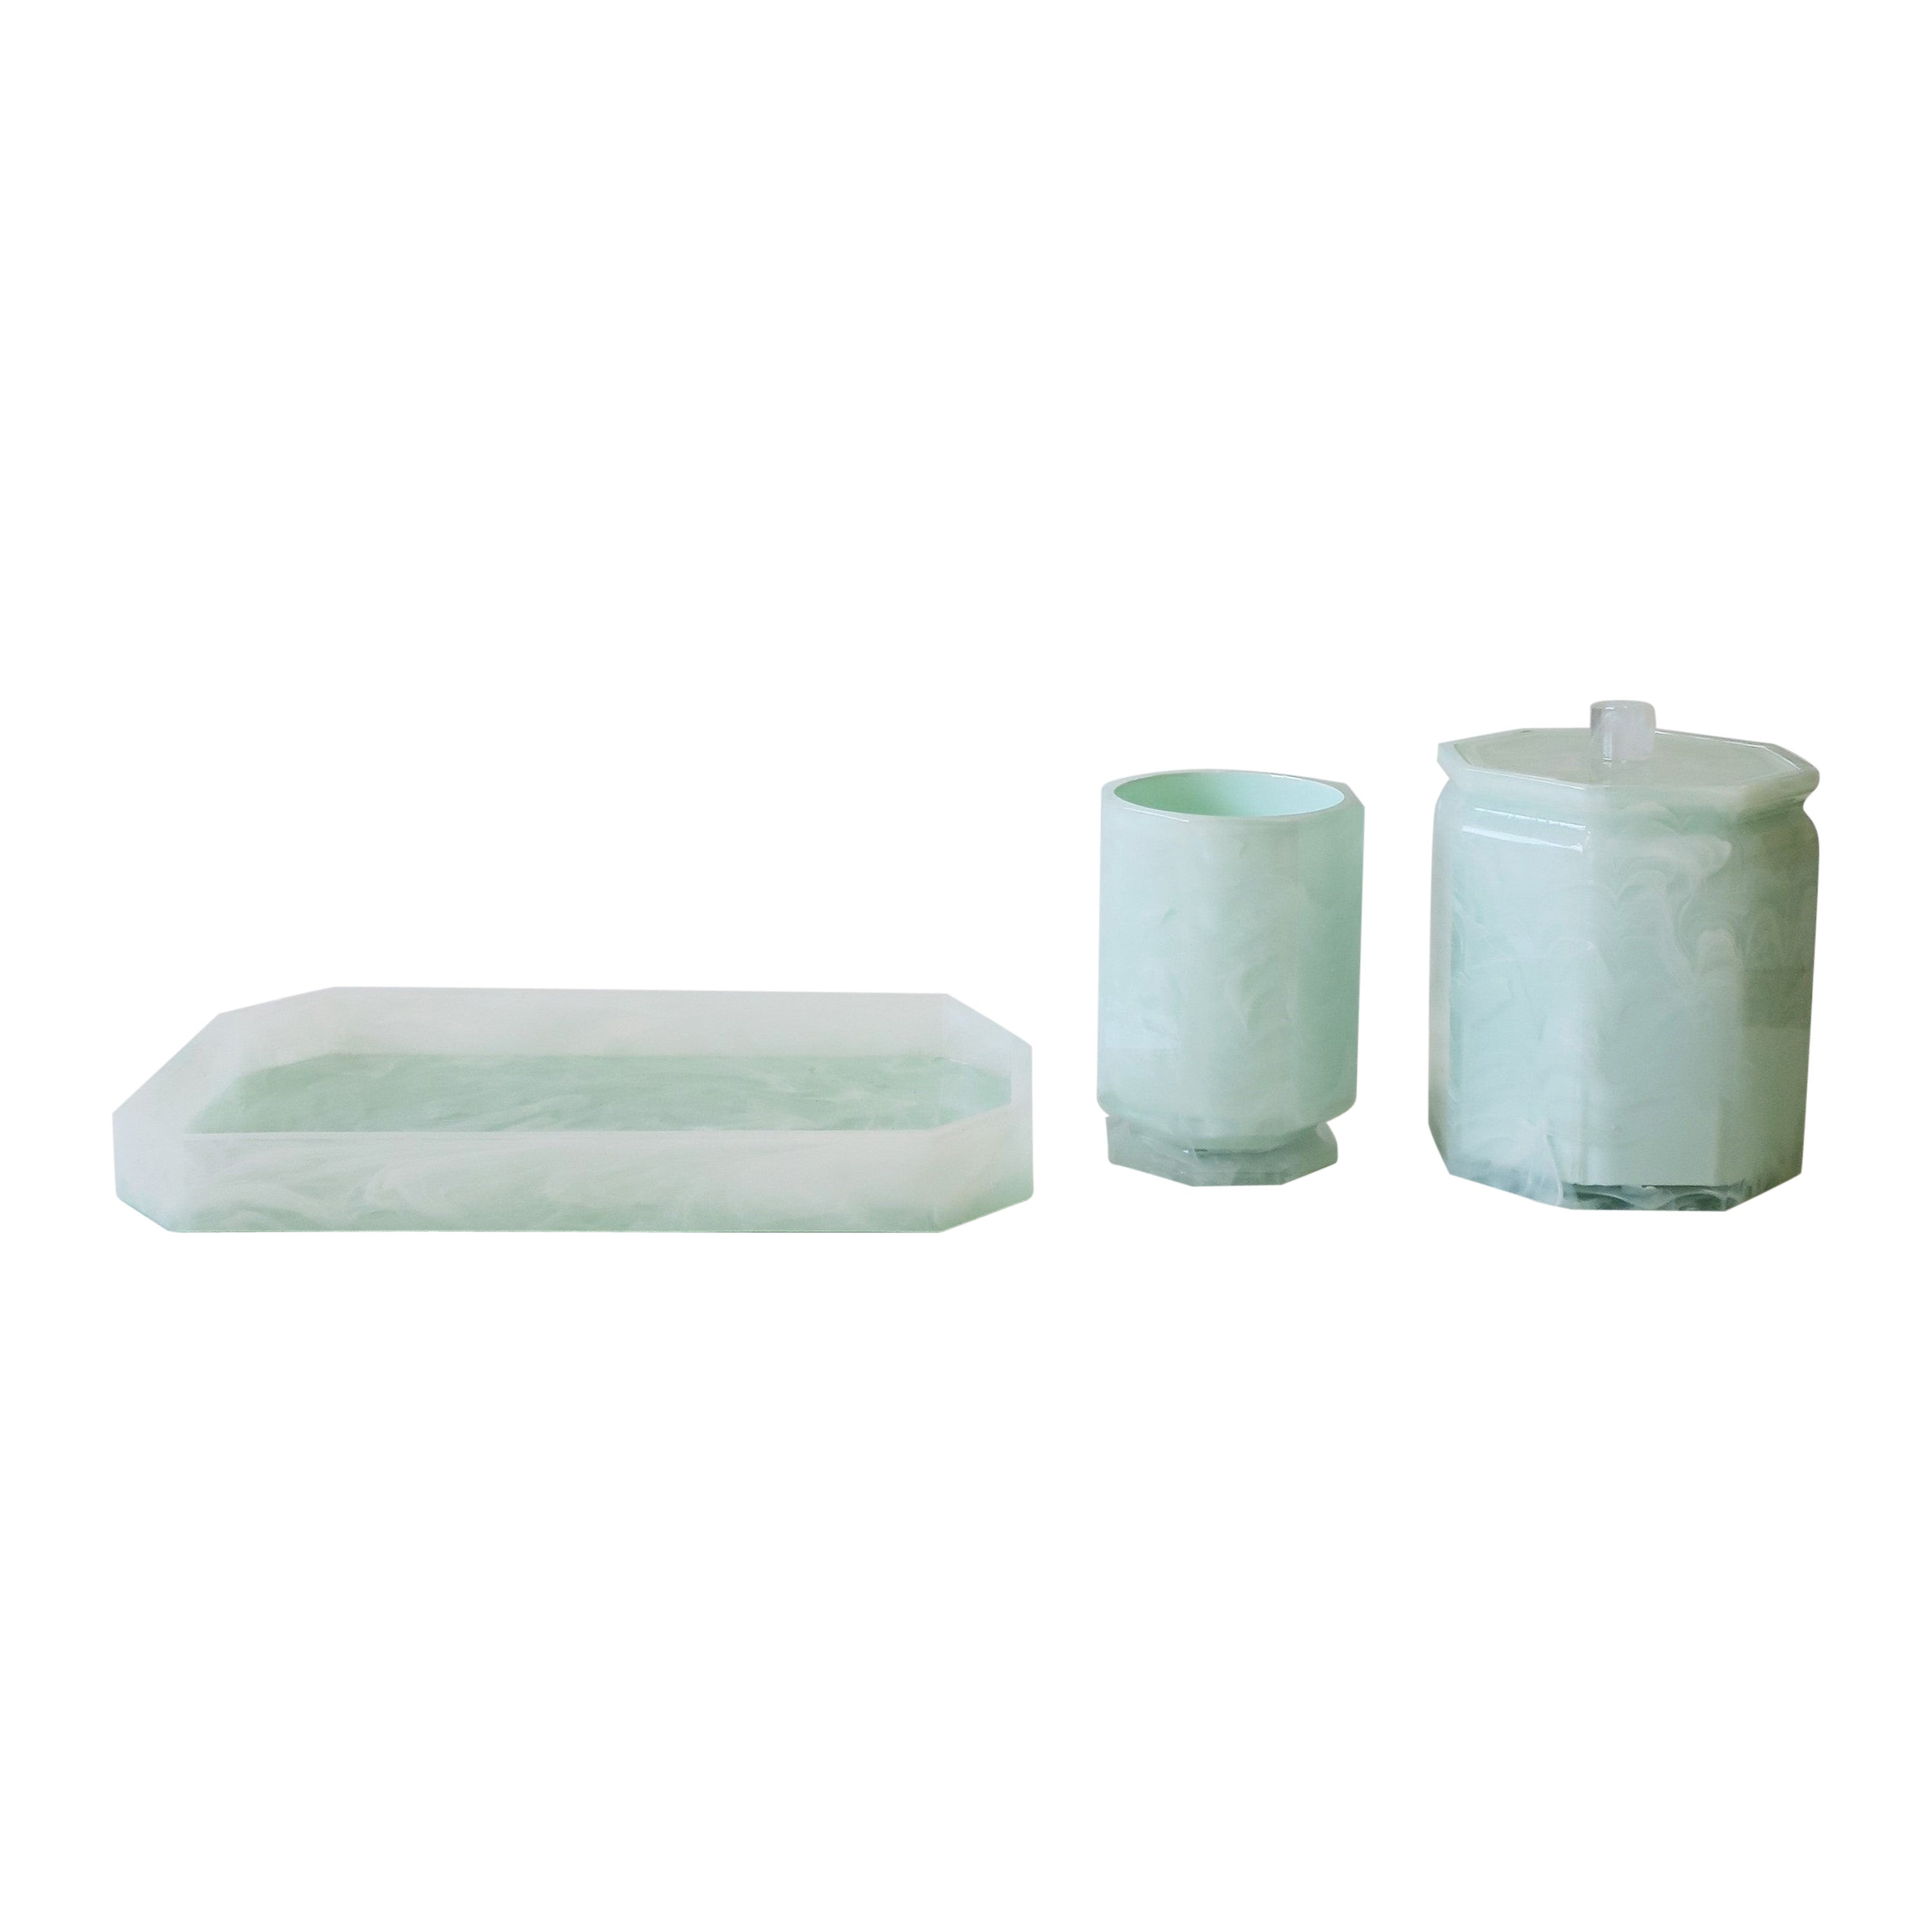 Marble Style Acrylic Desk or Vanity Tray Set in White and Green